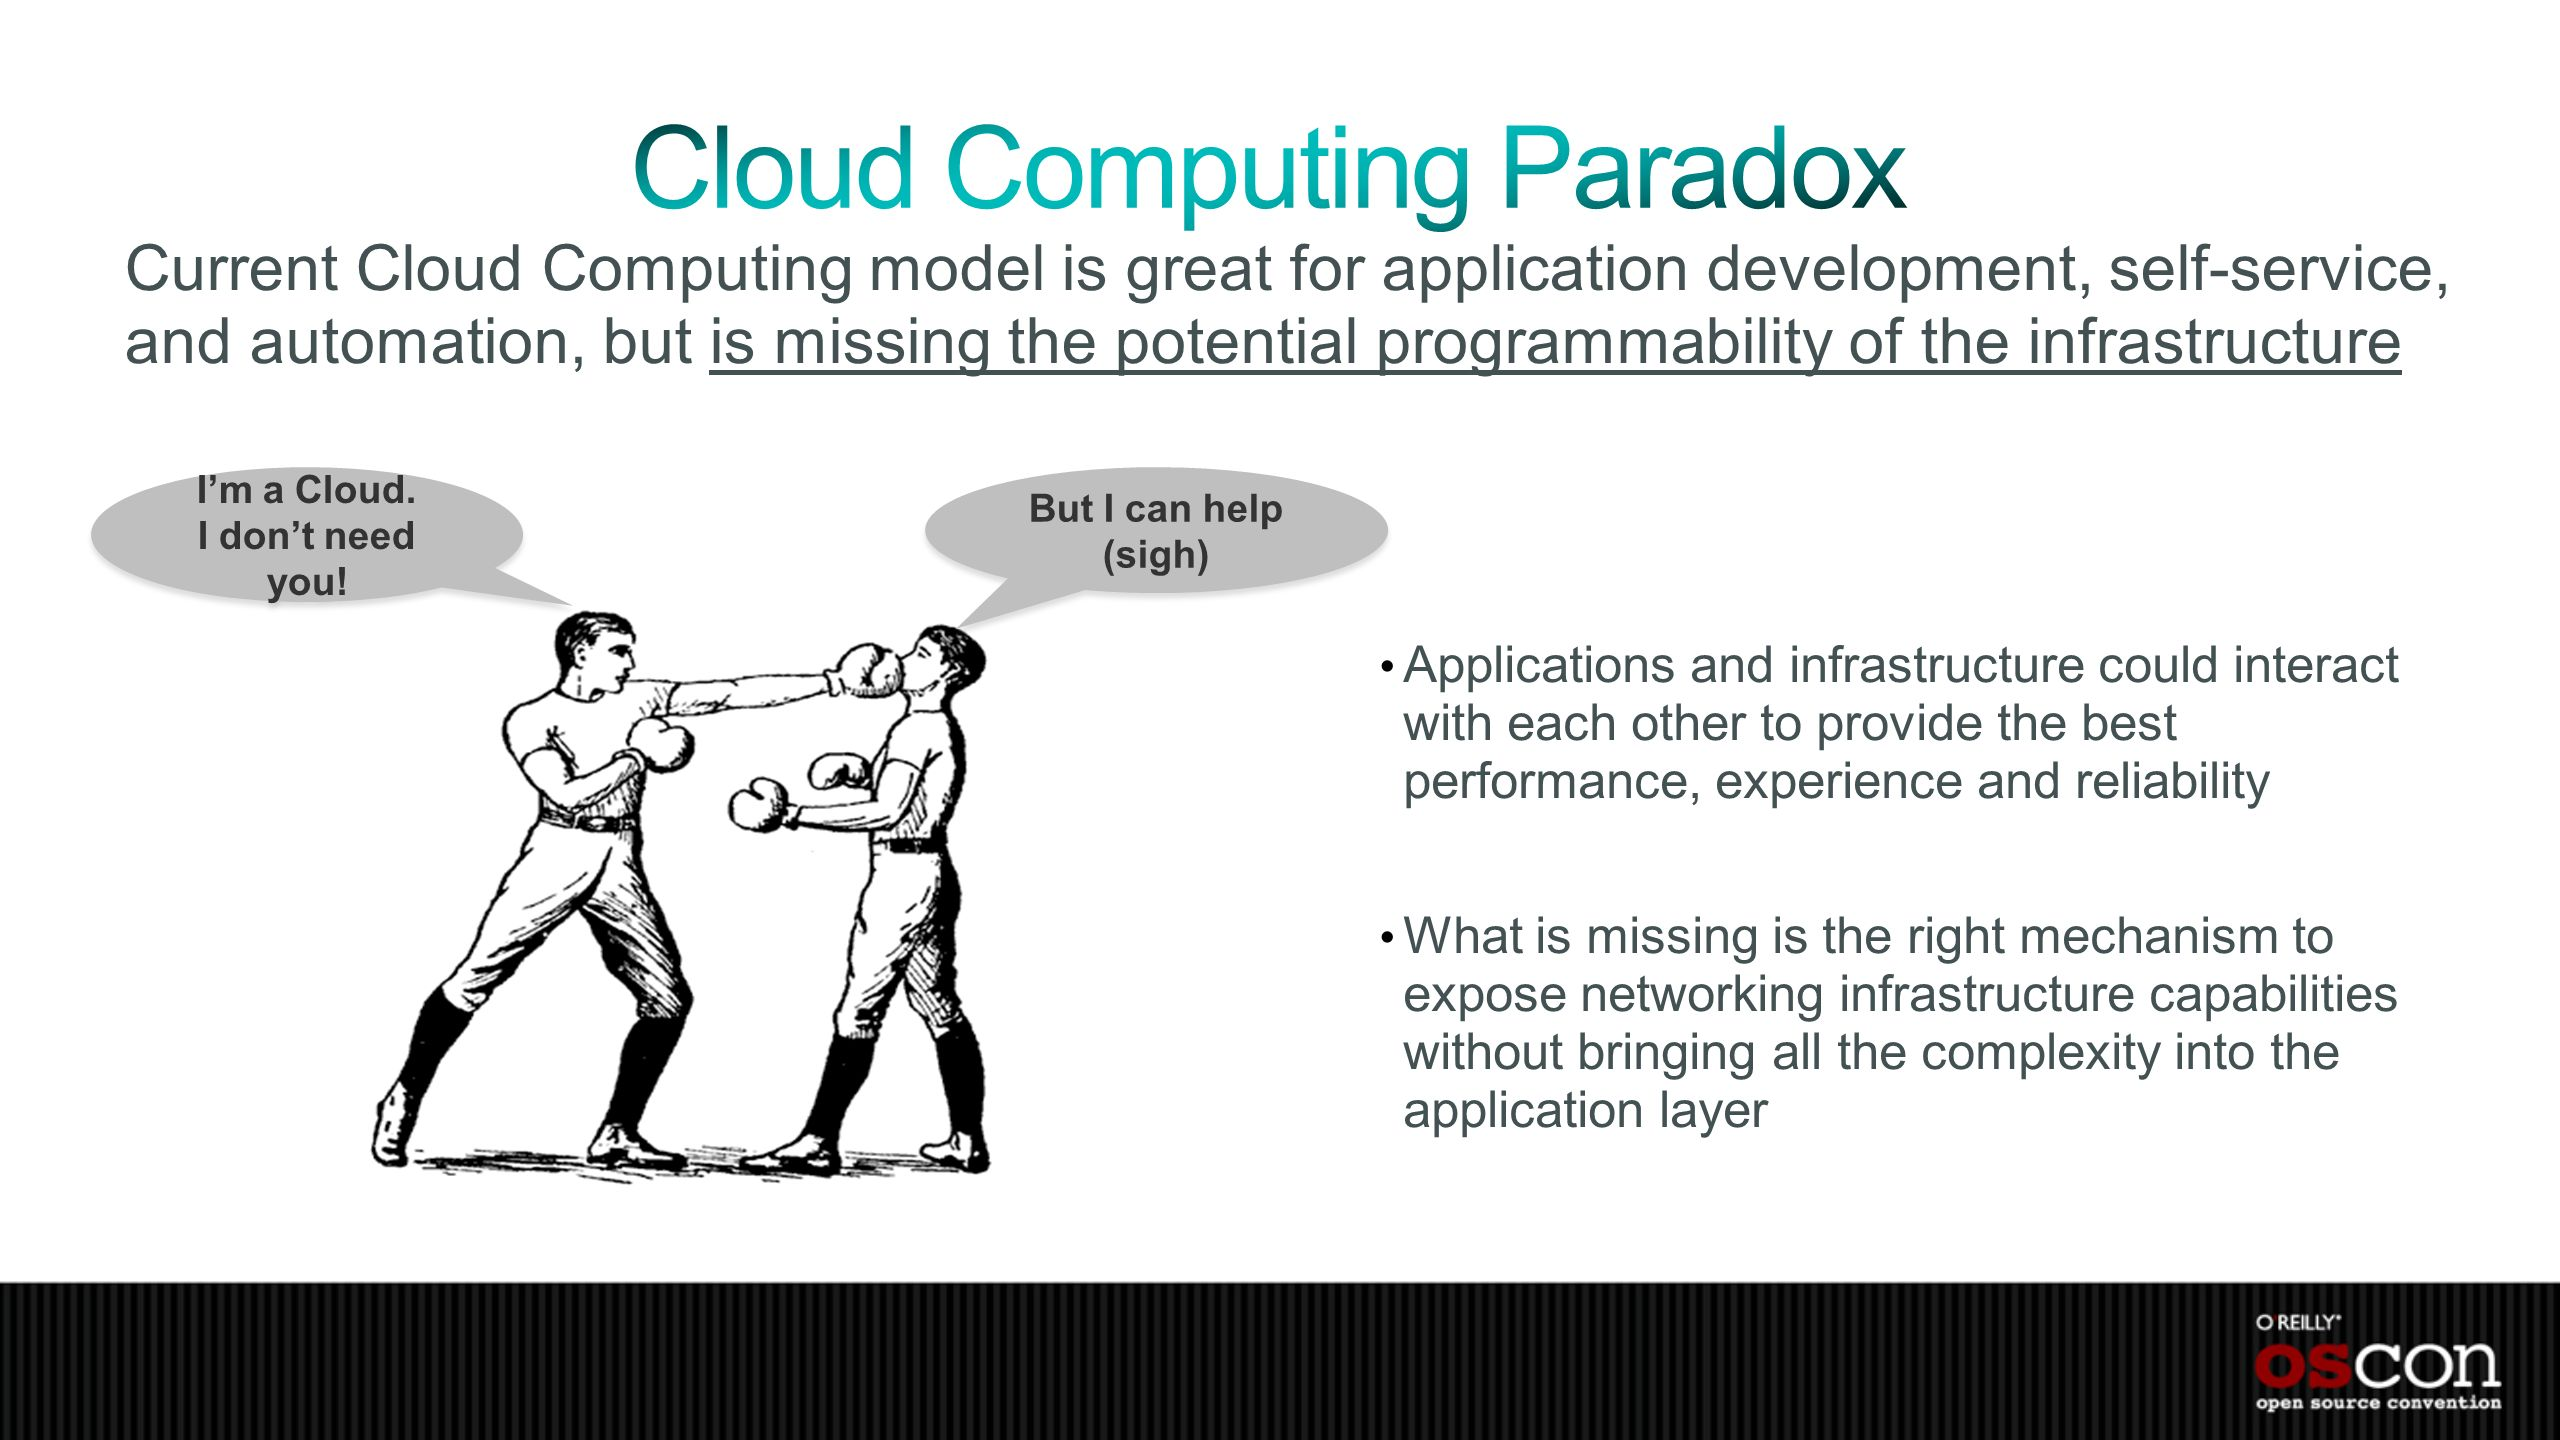 Current Cloud Computing model is great for application development, self-service, and automation, but is missing the potential programmability of the